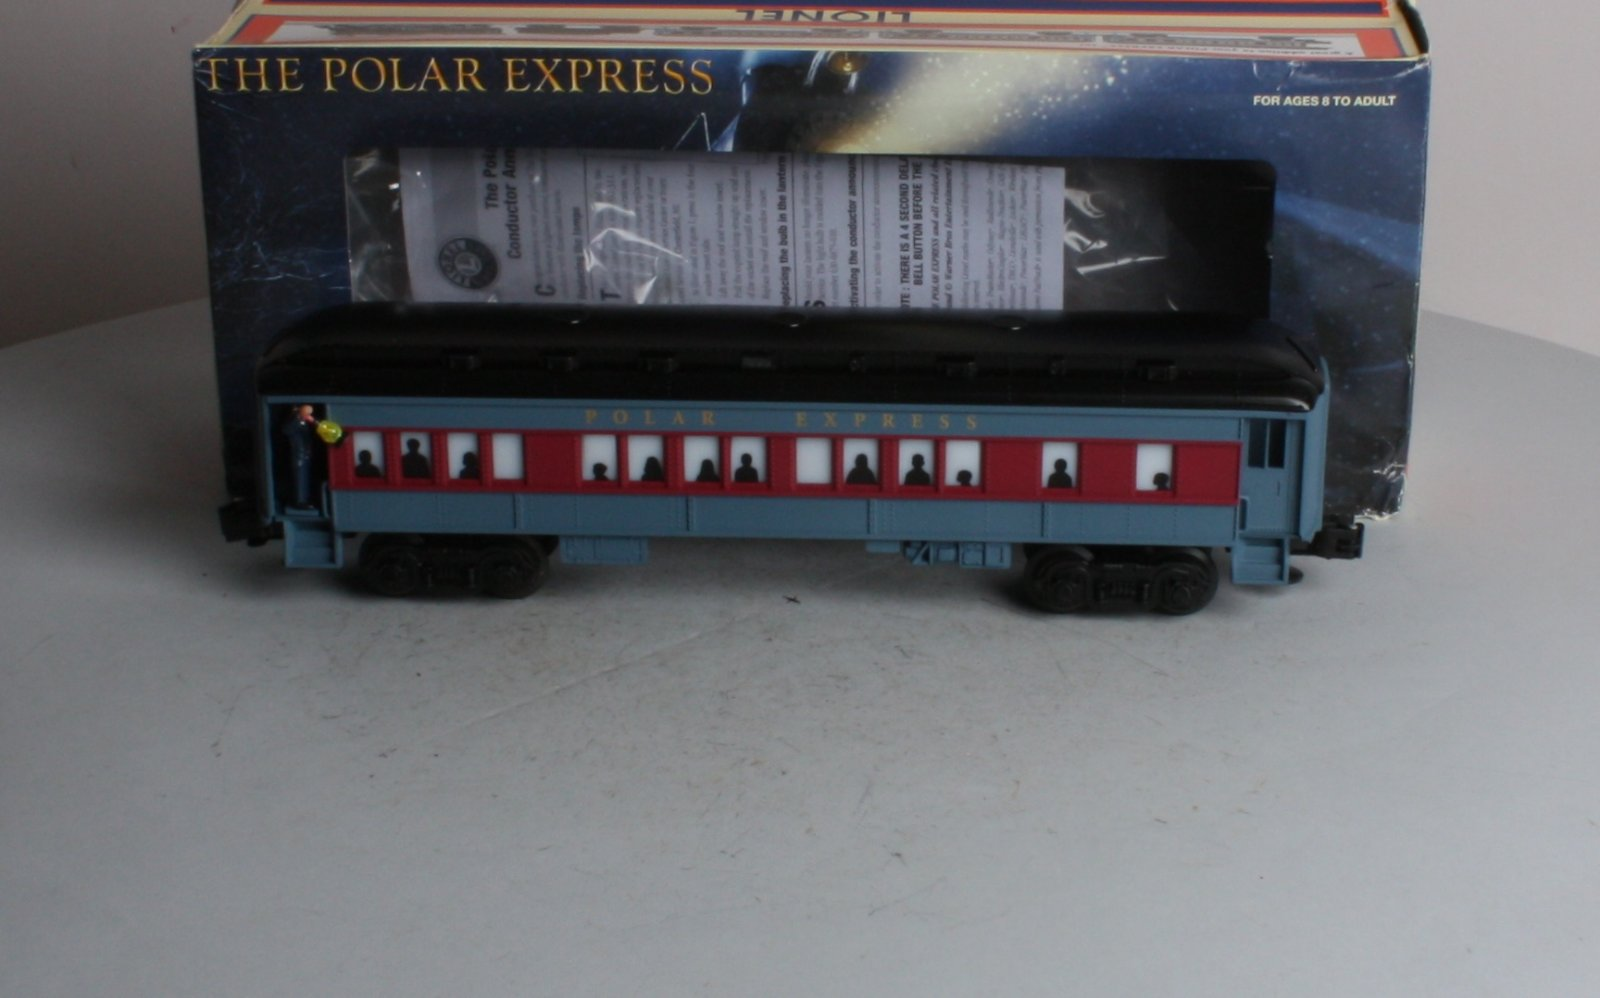 Lionel 6-36875 O Polar Express Coach w/Conductor Announcements This is a Lionel 6-36875 Polar Express Coach with Conductor Announcements. For even more excitement, add this Lionel 36875 Polar Express Coach passenger coach with real conductor announcements from the movie to your Polar Express Set. The conductor figure, holding his lighted lantern, stands in the doorway welcoming passengers, and says  All aboard!  The car features include interior lighting, silhouettes in windows, transformer-controlled conductor announcement triggering, an ON/OFF switch, conductor figure in doorway, a lighted lantern and it measures 12 inches long.Condition: Factory New (C-9All original; unused; factory rubs and evidence of handling, shipping and factory test run.Standards for all toy train related accessory items apply to the visual appearance of the item and do not consider the operating functionality of the equipment.Condition and Grading Standards are subjective, at best, and are intended to act as a guide. )Operational Status: FunctionalThis item is brand new from the factory.Original Box: Yes (P-9May have store stamps and price tags. Has inner liners.)Manufacturer: LionelModel Number: 6-36875Road Name: Polar ExpressMSRP: $131.99Scale/Era: O ModernModel Type: Passenger CarsAvailability: Ships in 3 to 5 Business Days.The Trainz SKU for this item is P11438240. Track: 11438240 - FS - 001 - TrainzAuctionGroup00UNK - TDIDUNK